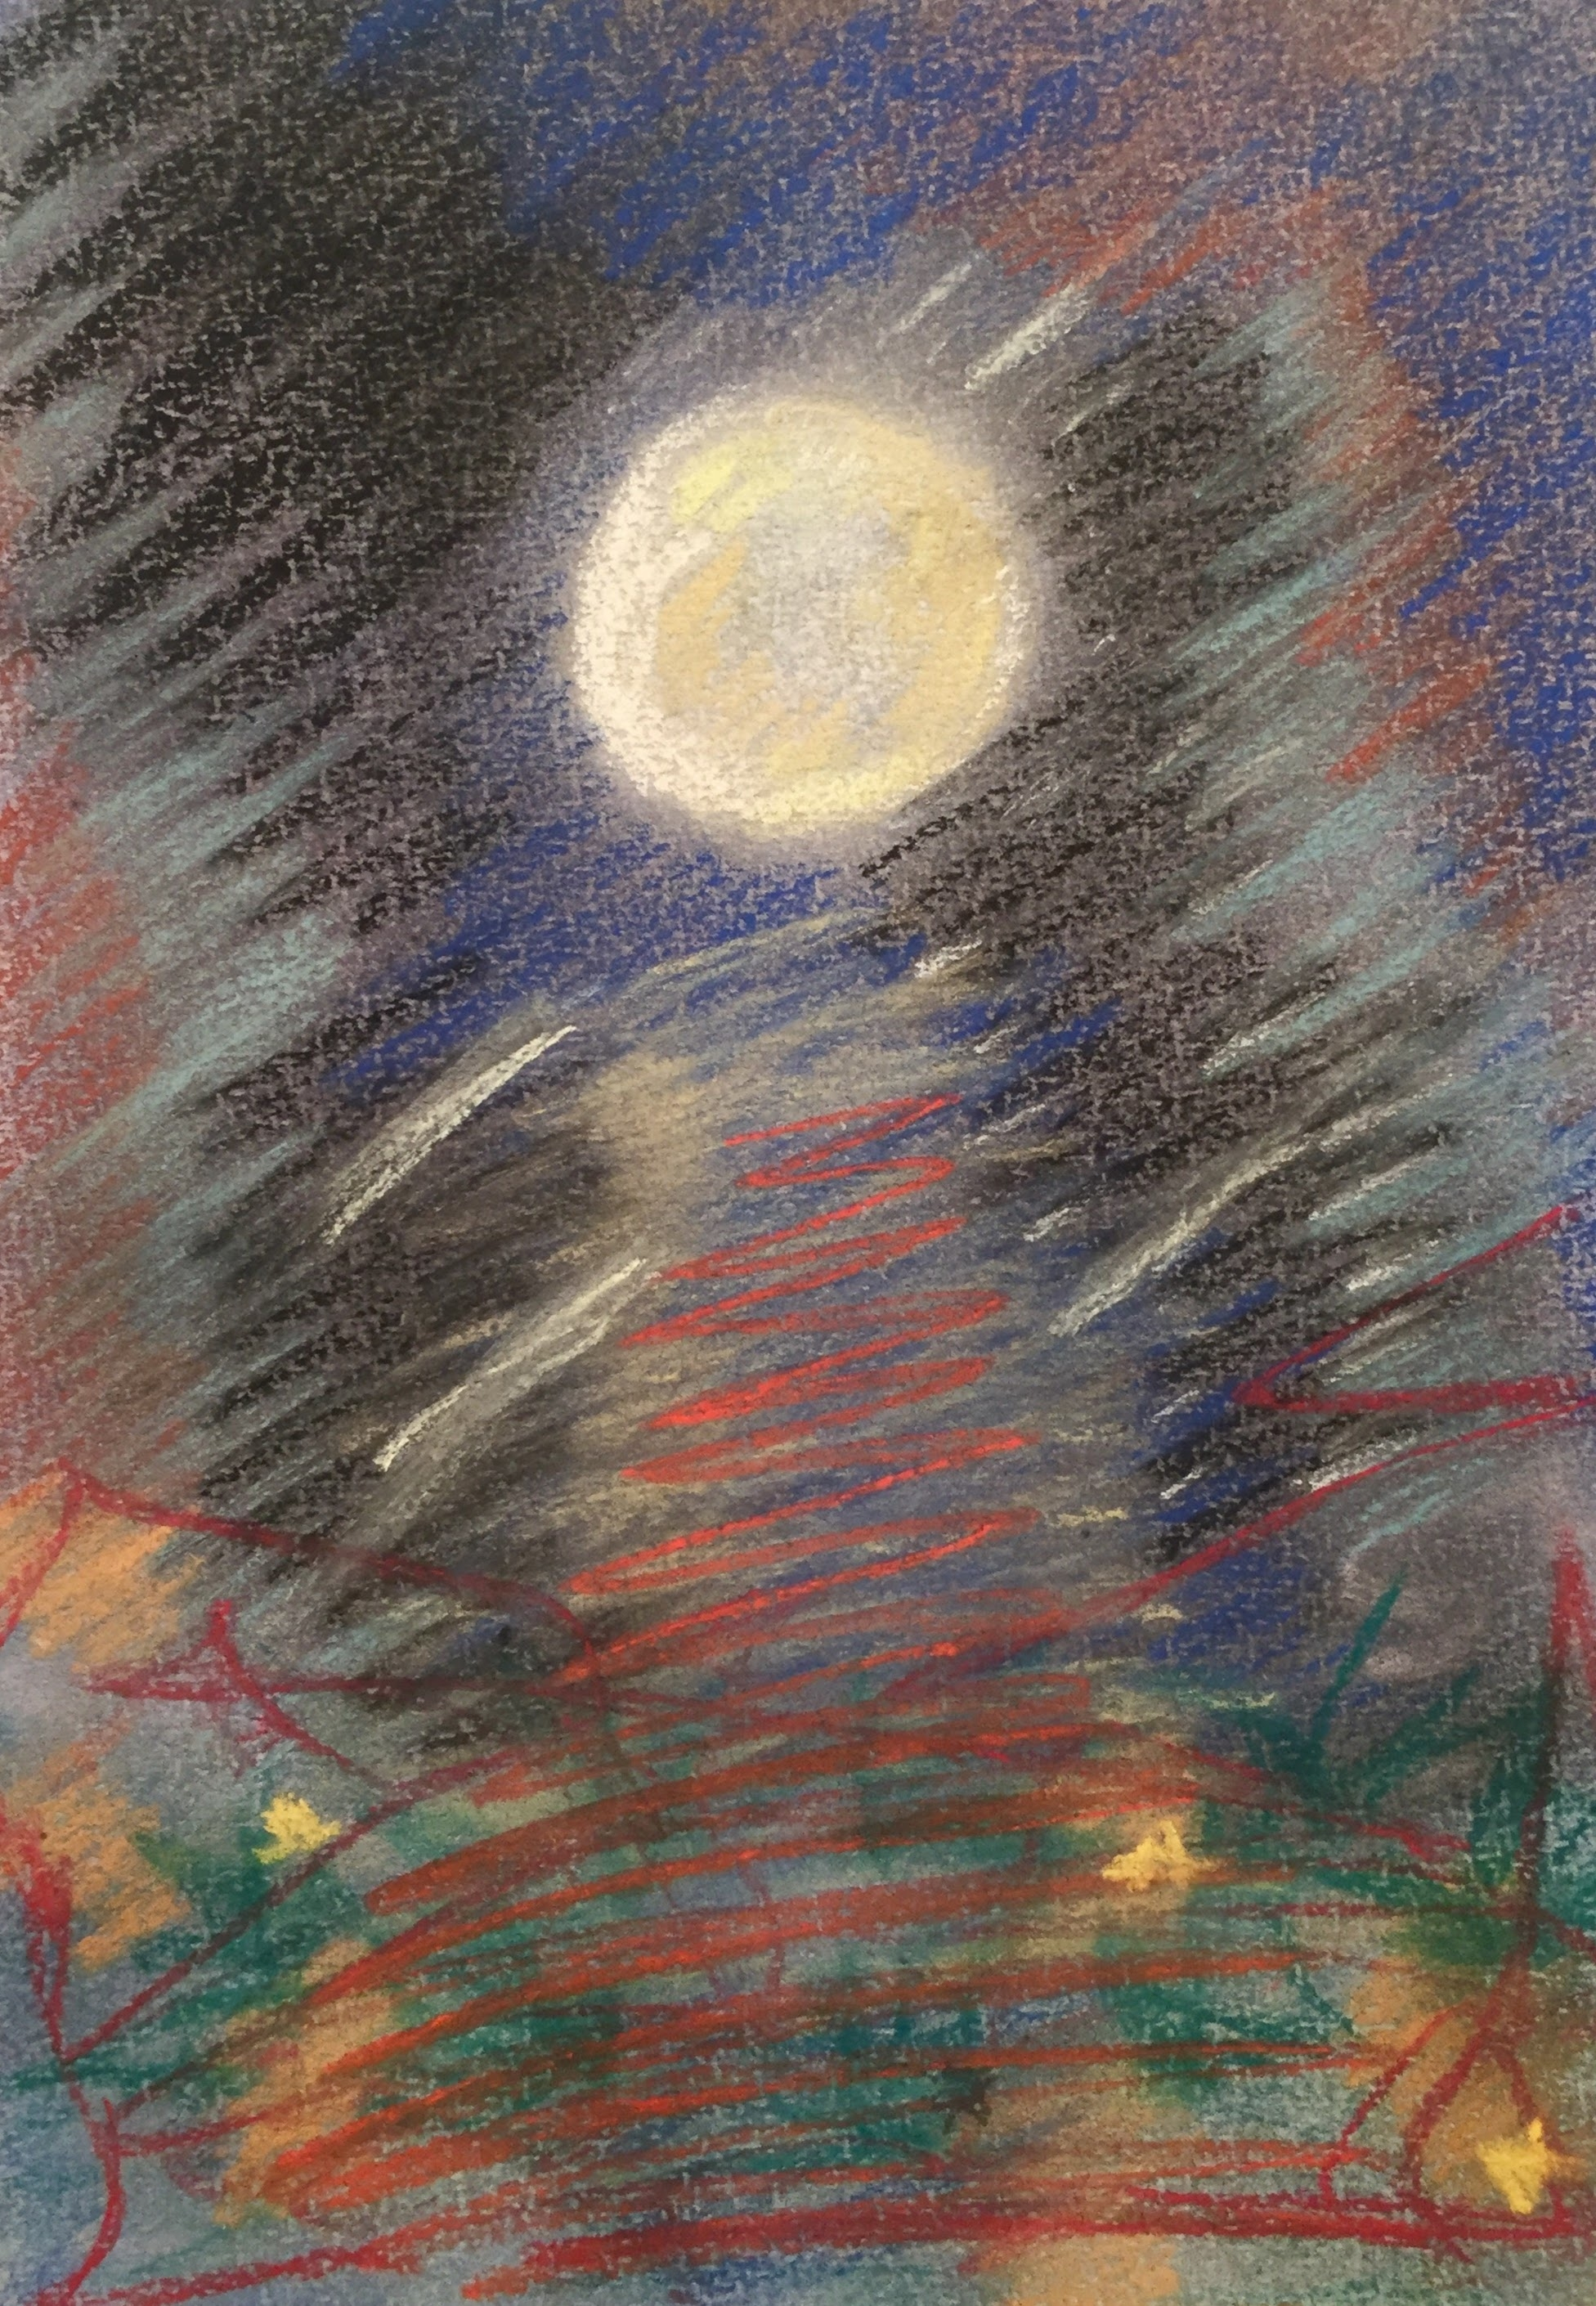 Full Moon Walk in the Catskills, 12 x 9 Pastel on Paper, 1996